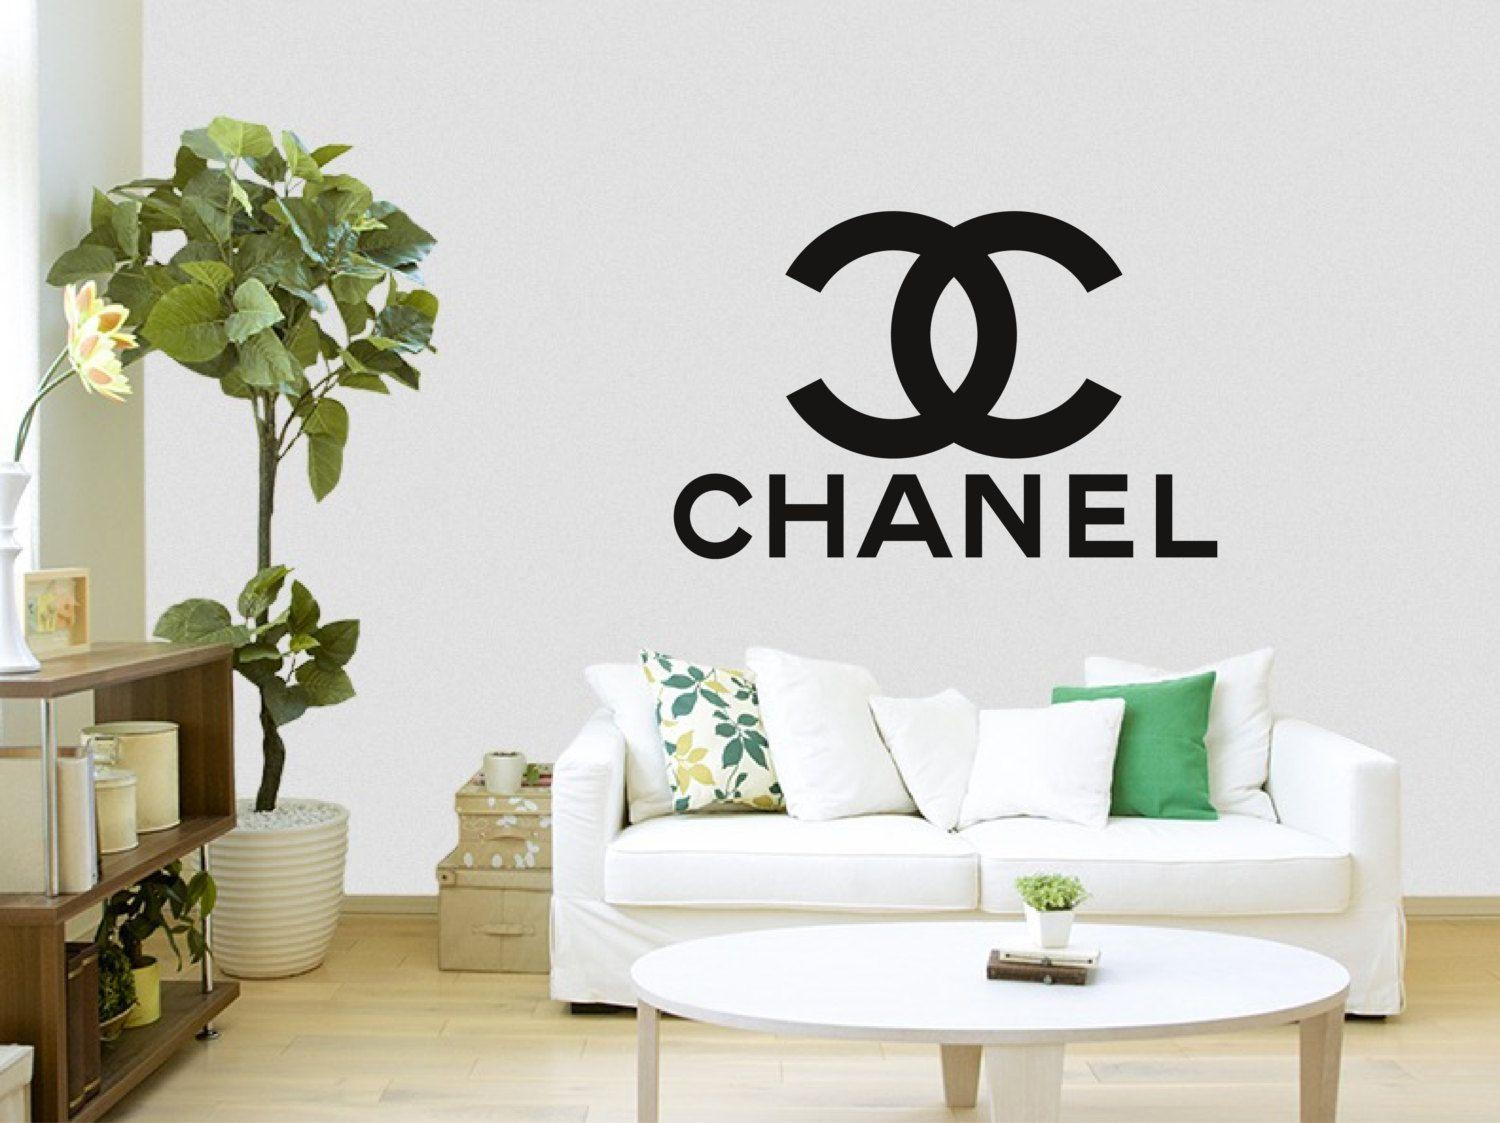 Beautiful Wallpaper Marble Chanel - coco-chanel-logo-with-words-wall-sticker-for-coco-chanel-wall-decals  Graphic_845069.jpg